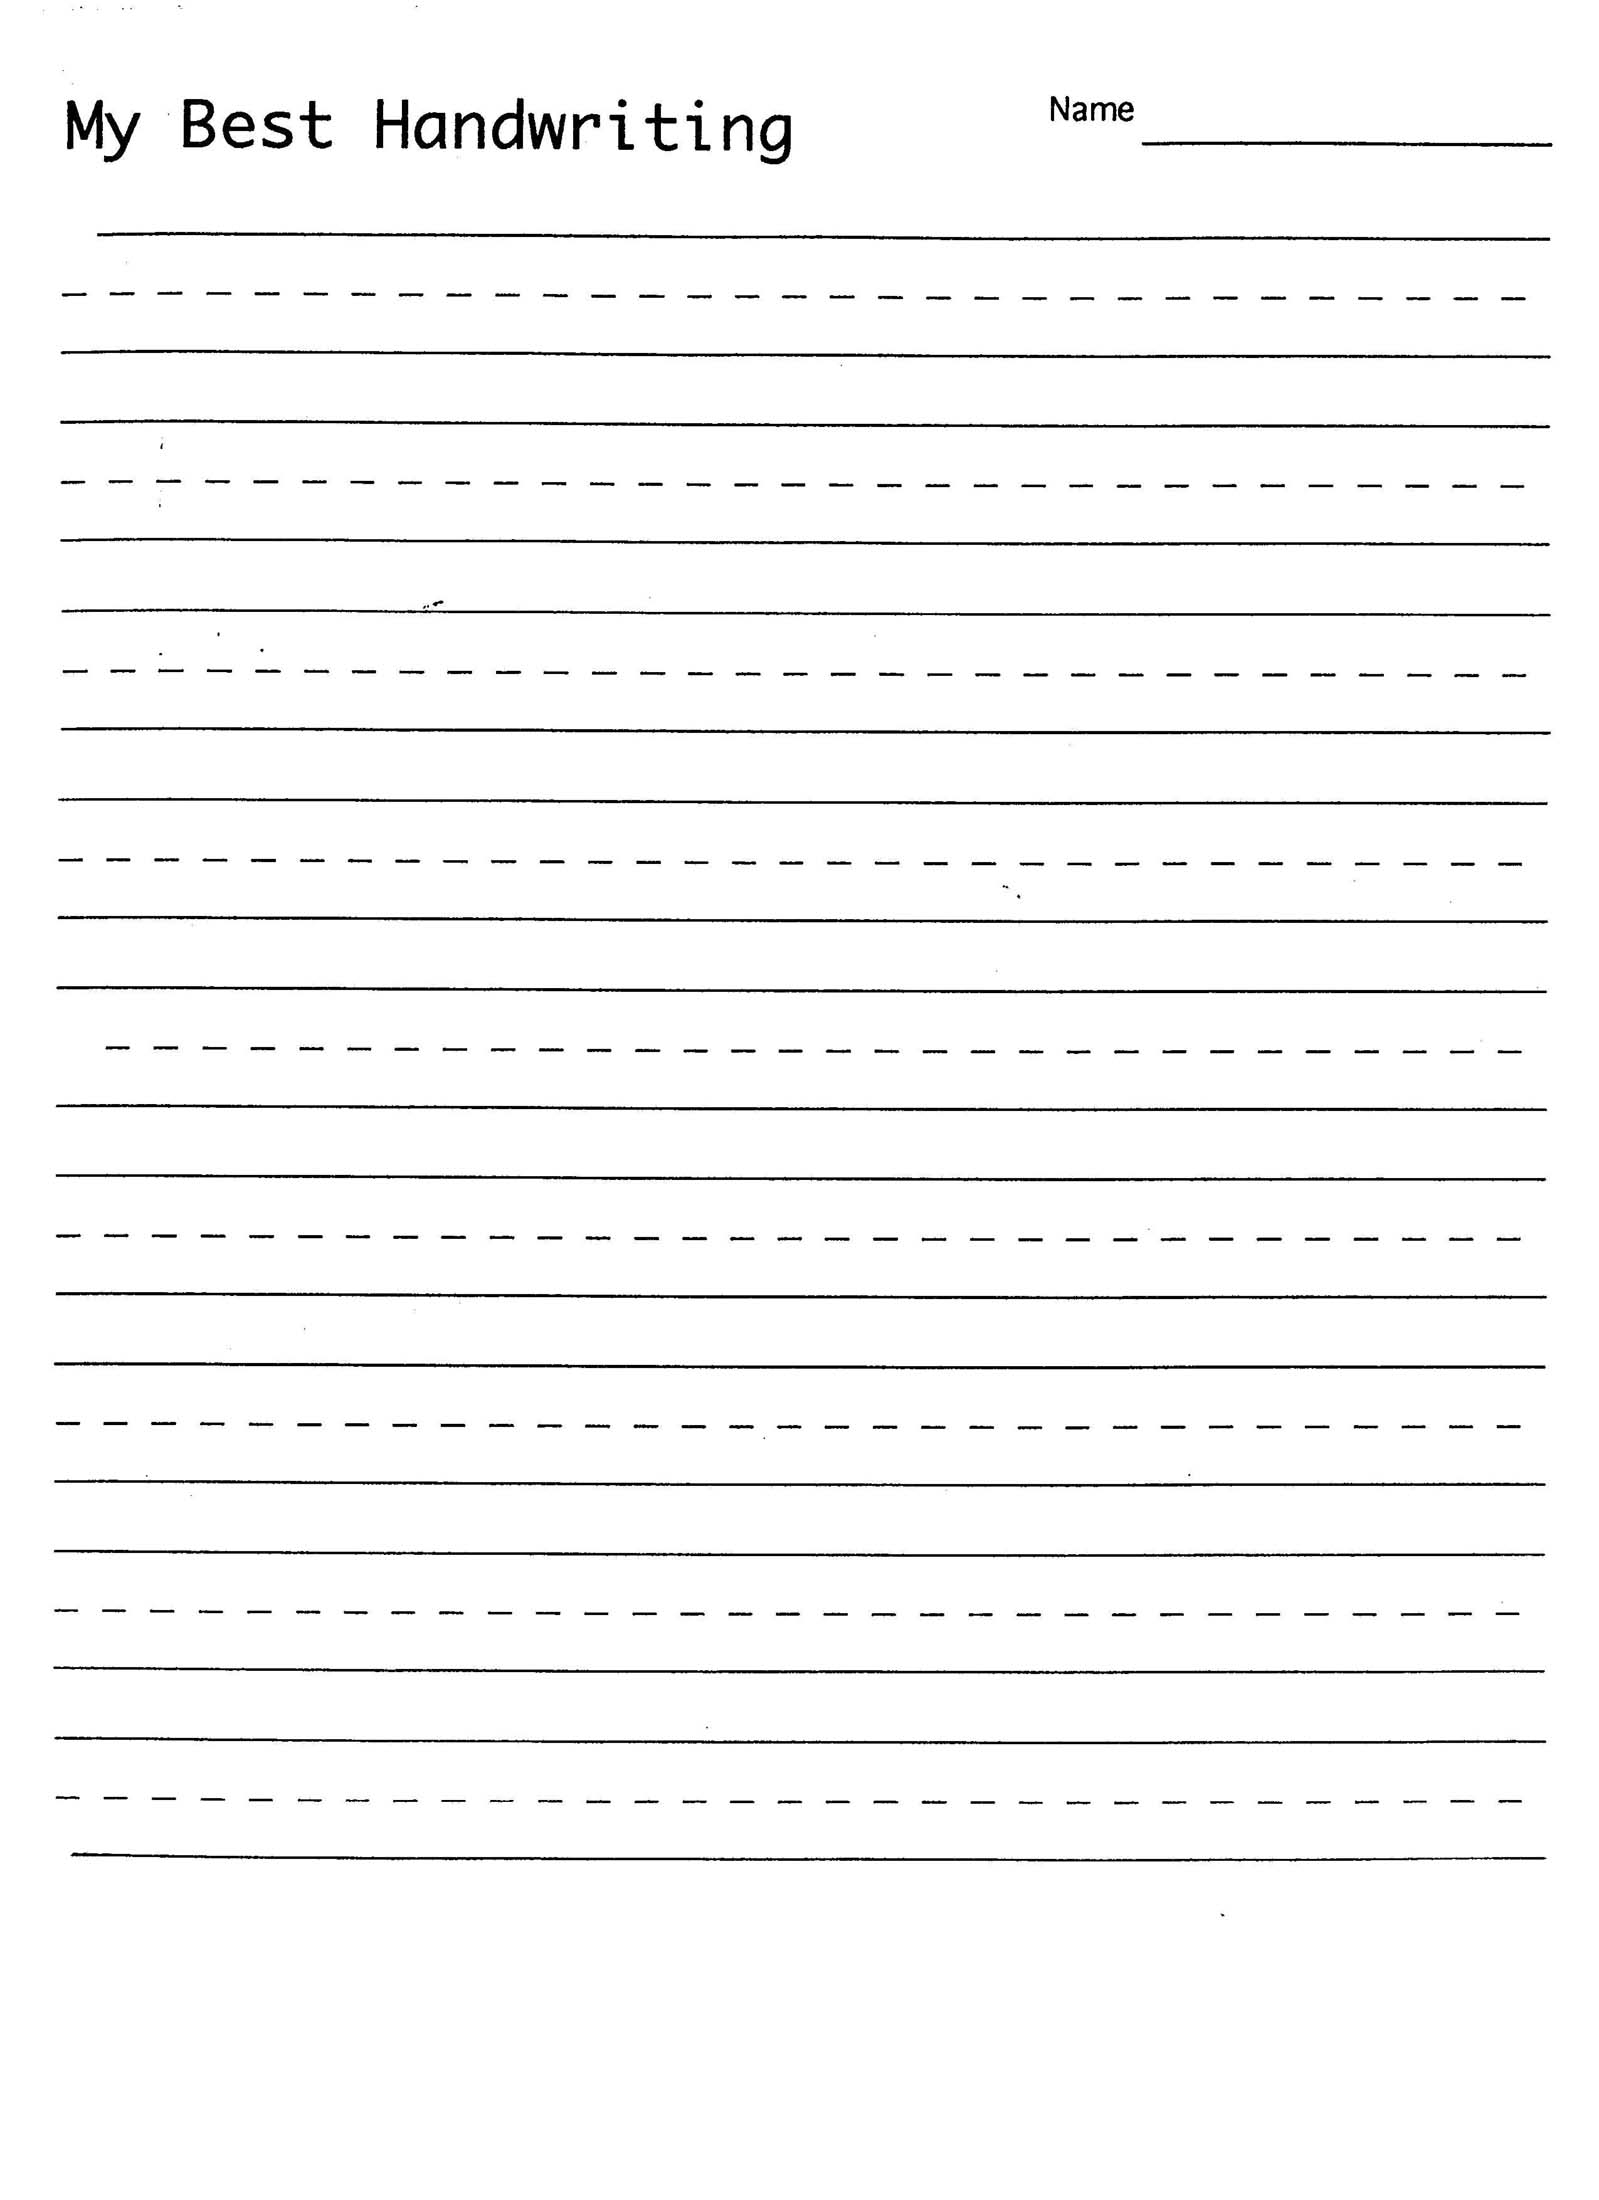 Handwriting Practice Worksheets For Kindergarten practice sheets – Handwriting Practice Worksheets for Kindergarten